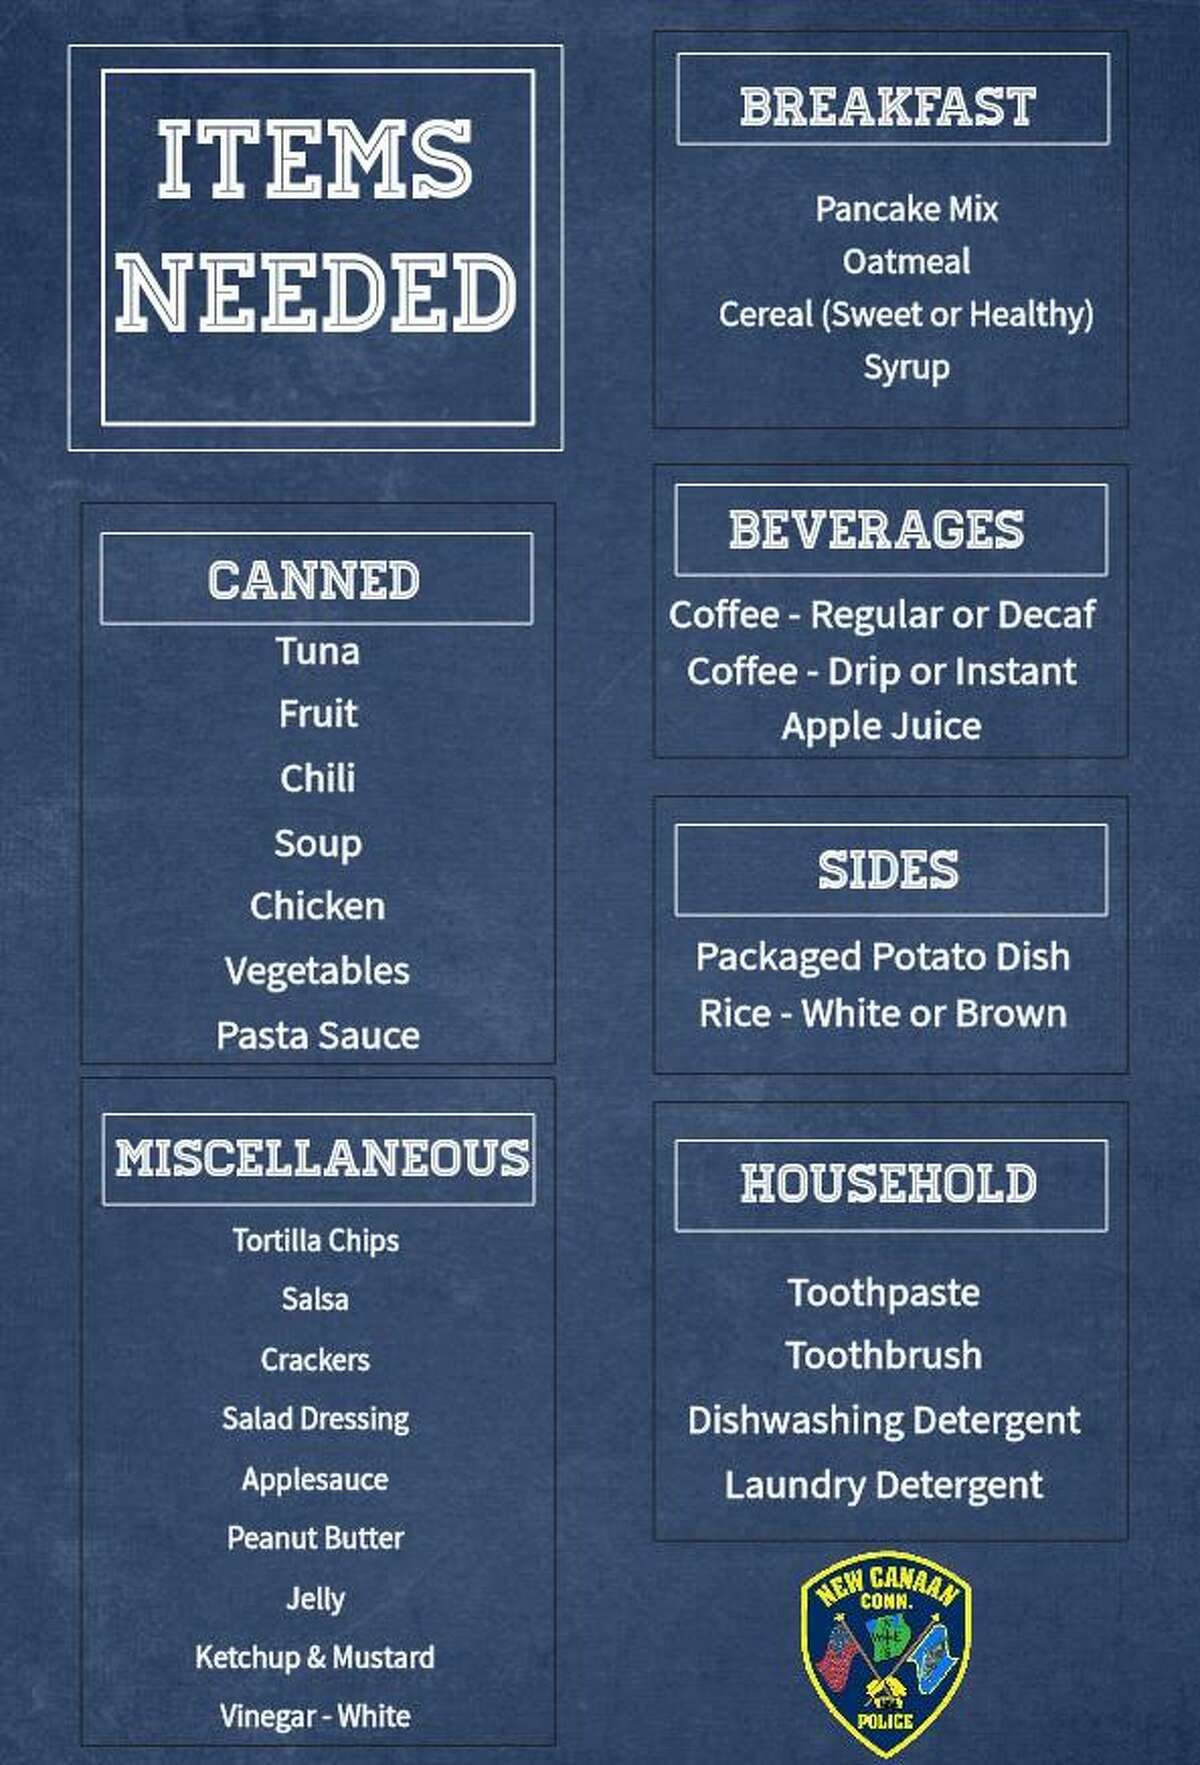 The New Canaan Police Department is hosting a food drive to benefit the New Canaan Food Pantry Sunday, Oct. 4, from 9 a.m.-1 p.m., at Acme Market, 288 Elm St., New Canaan.